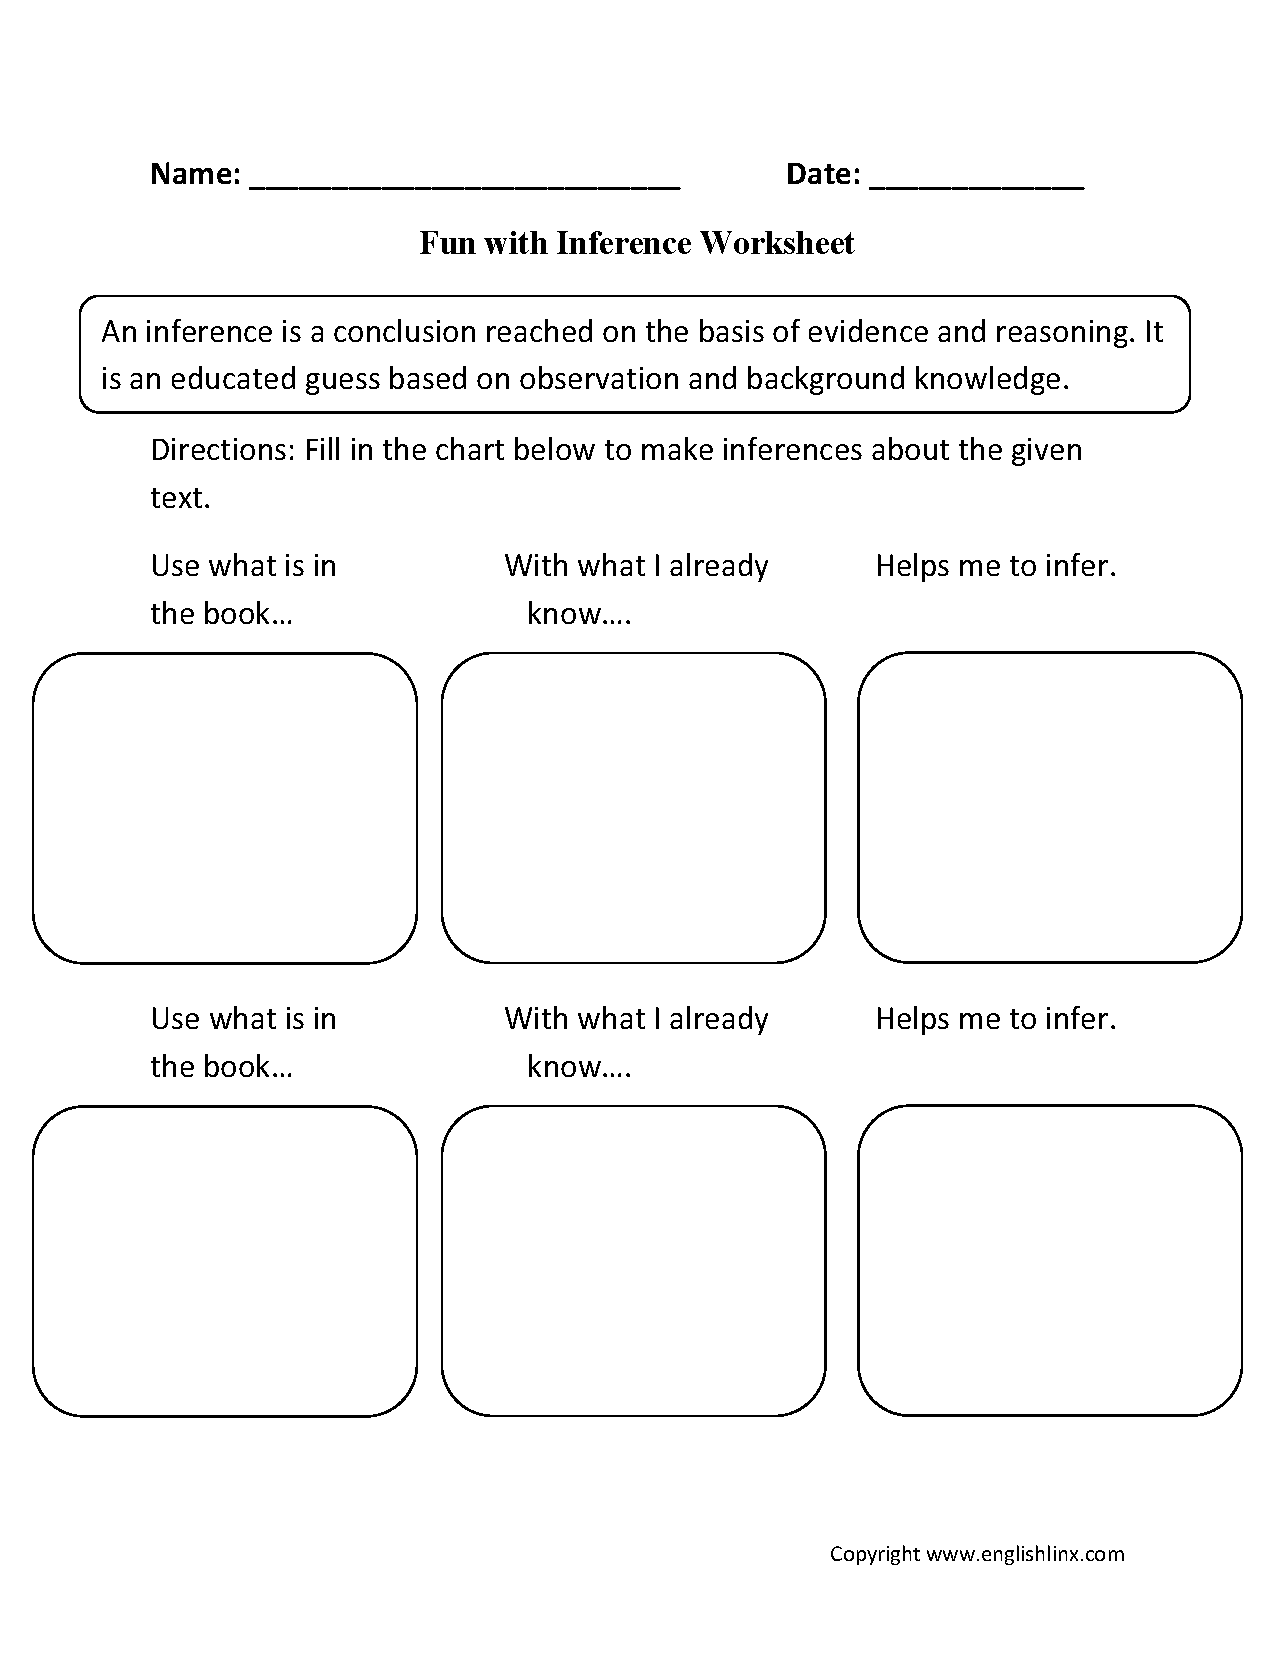 Fun with Inference Worksheets Englishlinx Board – Inference Worksheets 5th Grade